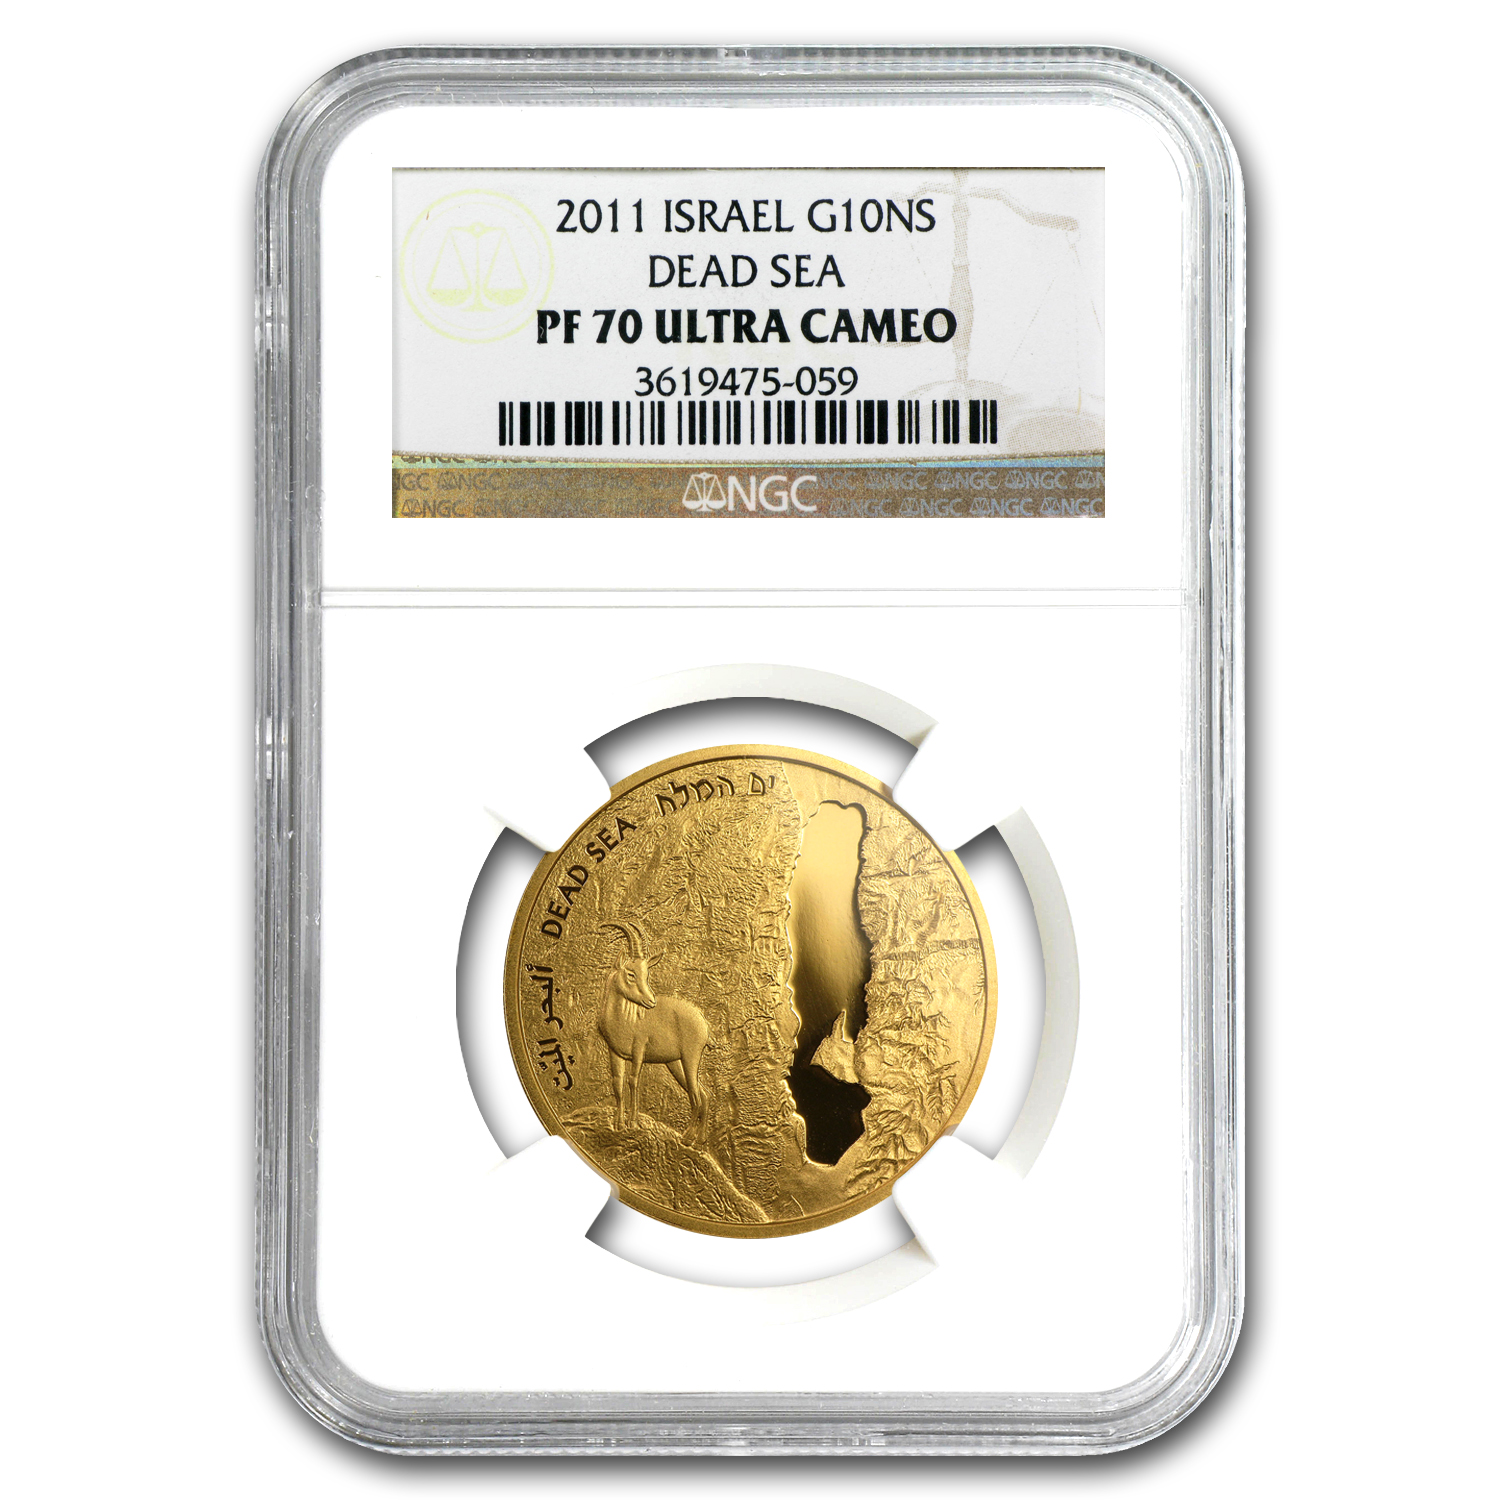 2011 Israel 1/2 oz Gold Dead Sea PF-70 NGC